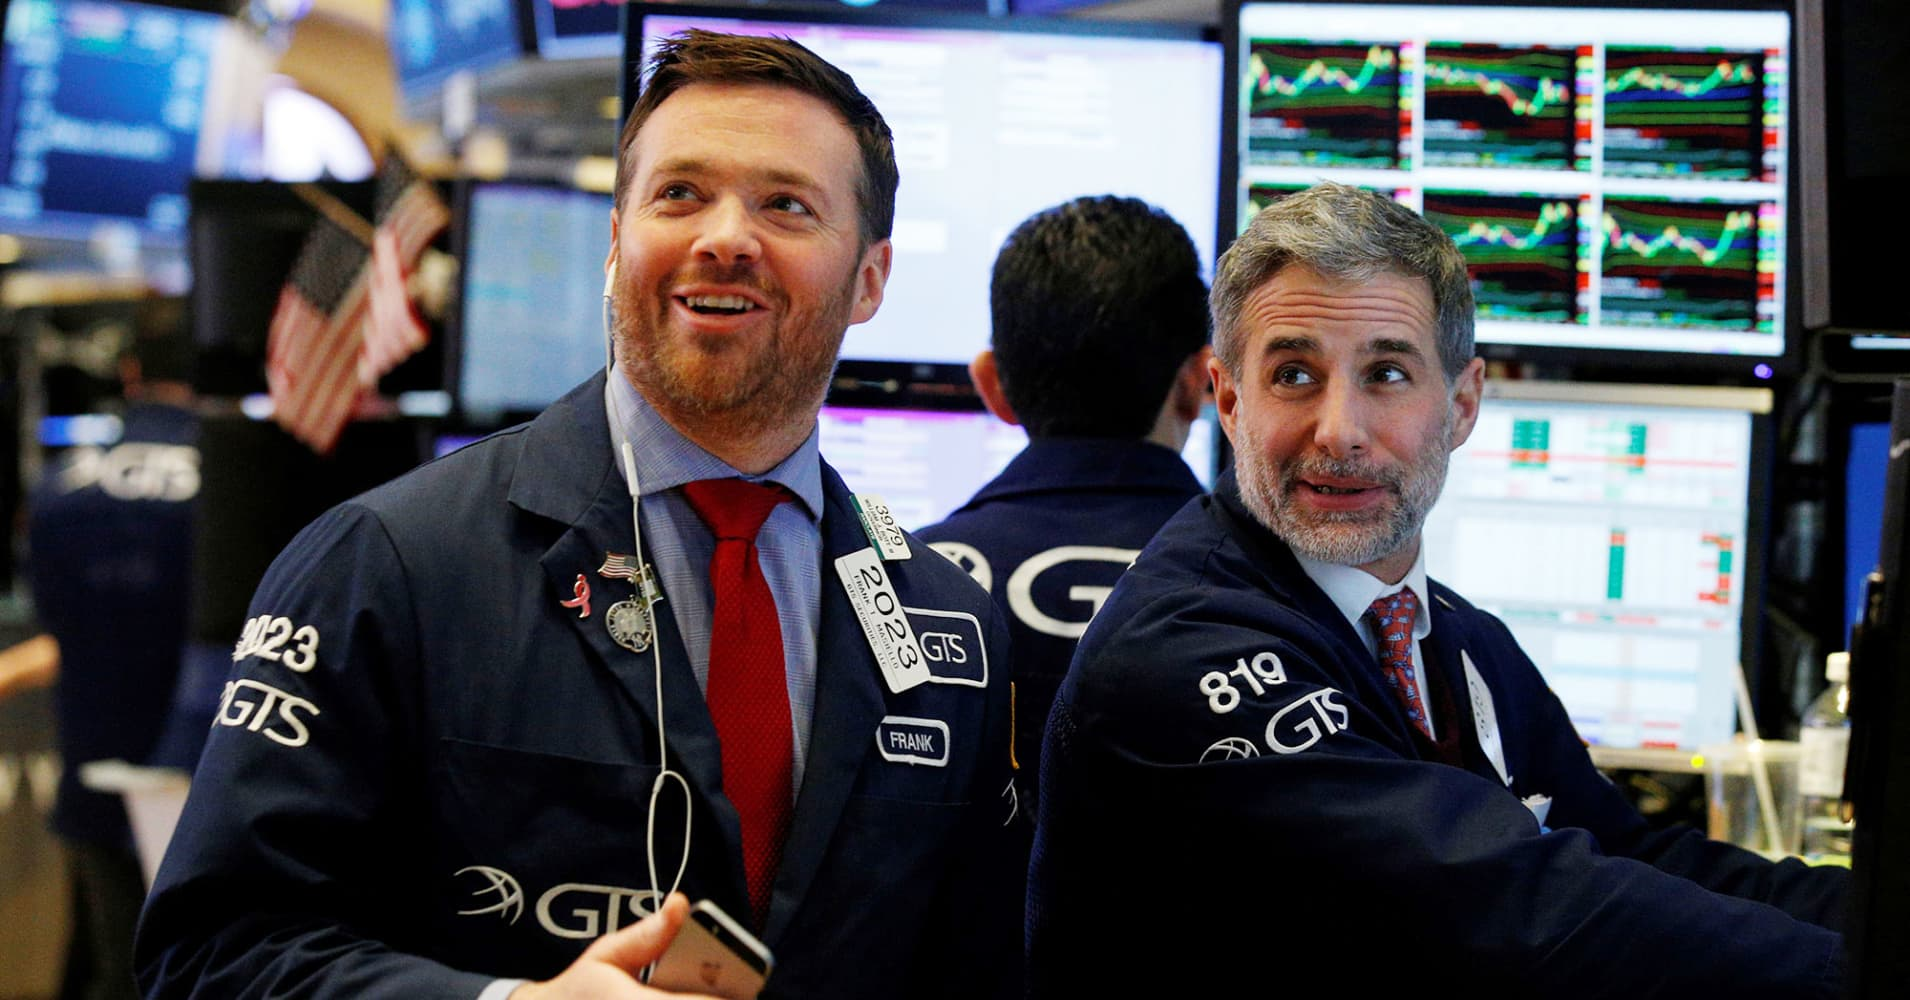 Dow rises more than 100 points as Procter & Gamble surges on earnings